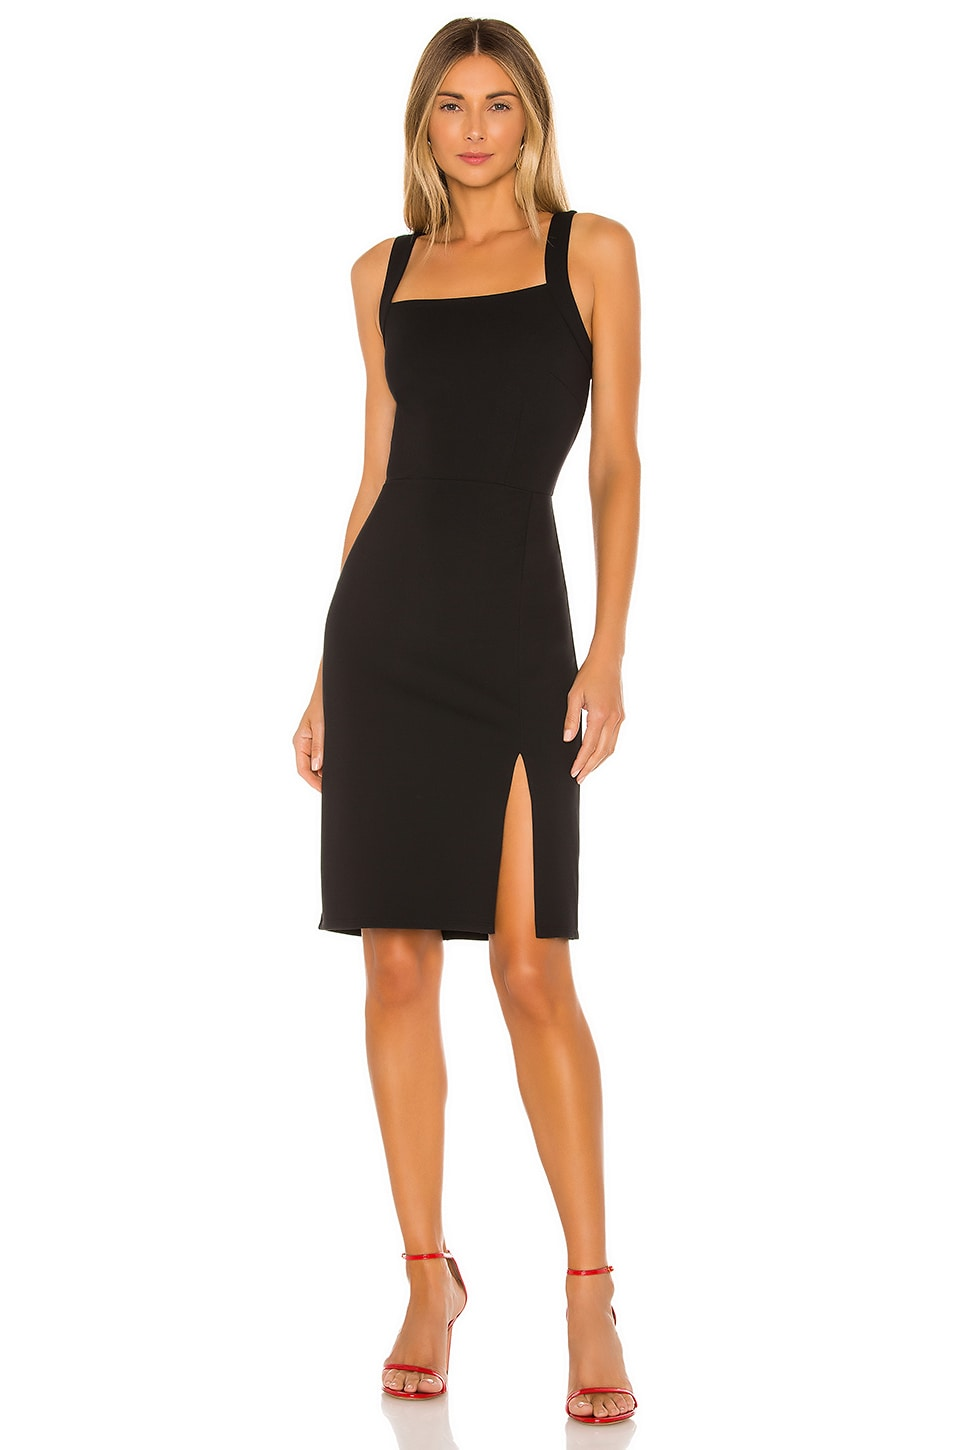 Cardiff Ponte Slit Dress             cupcakes and cashmere                                                                                                       CA$ 143.60 10